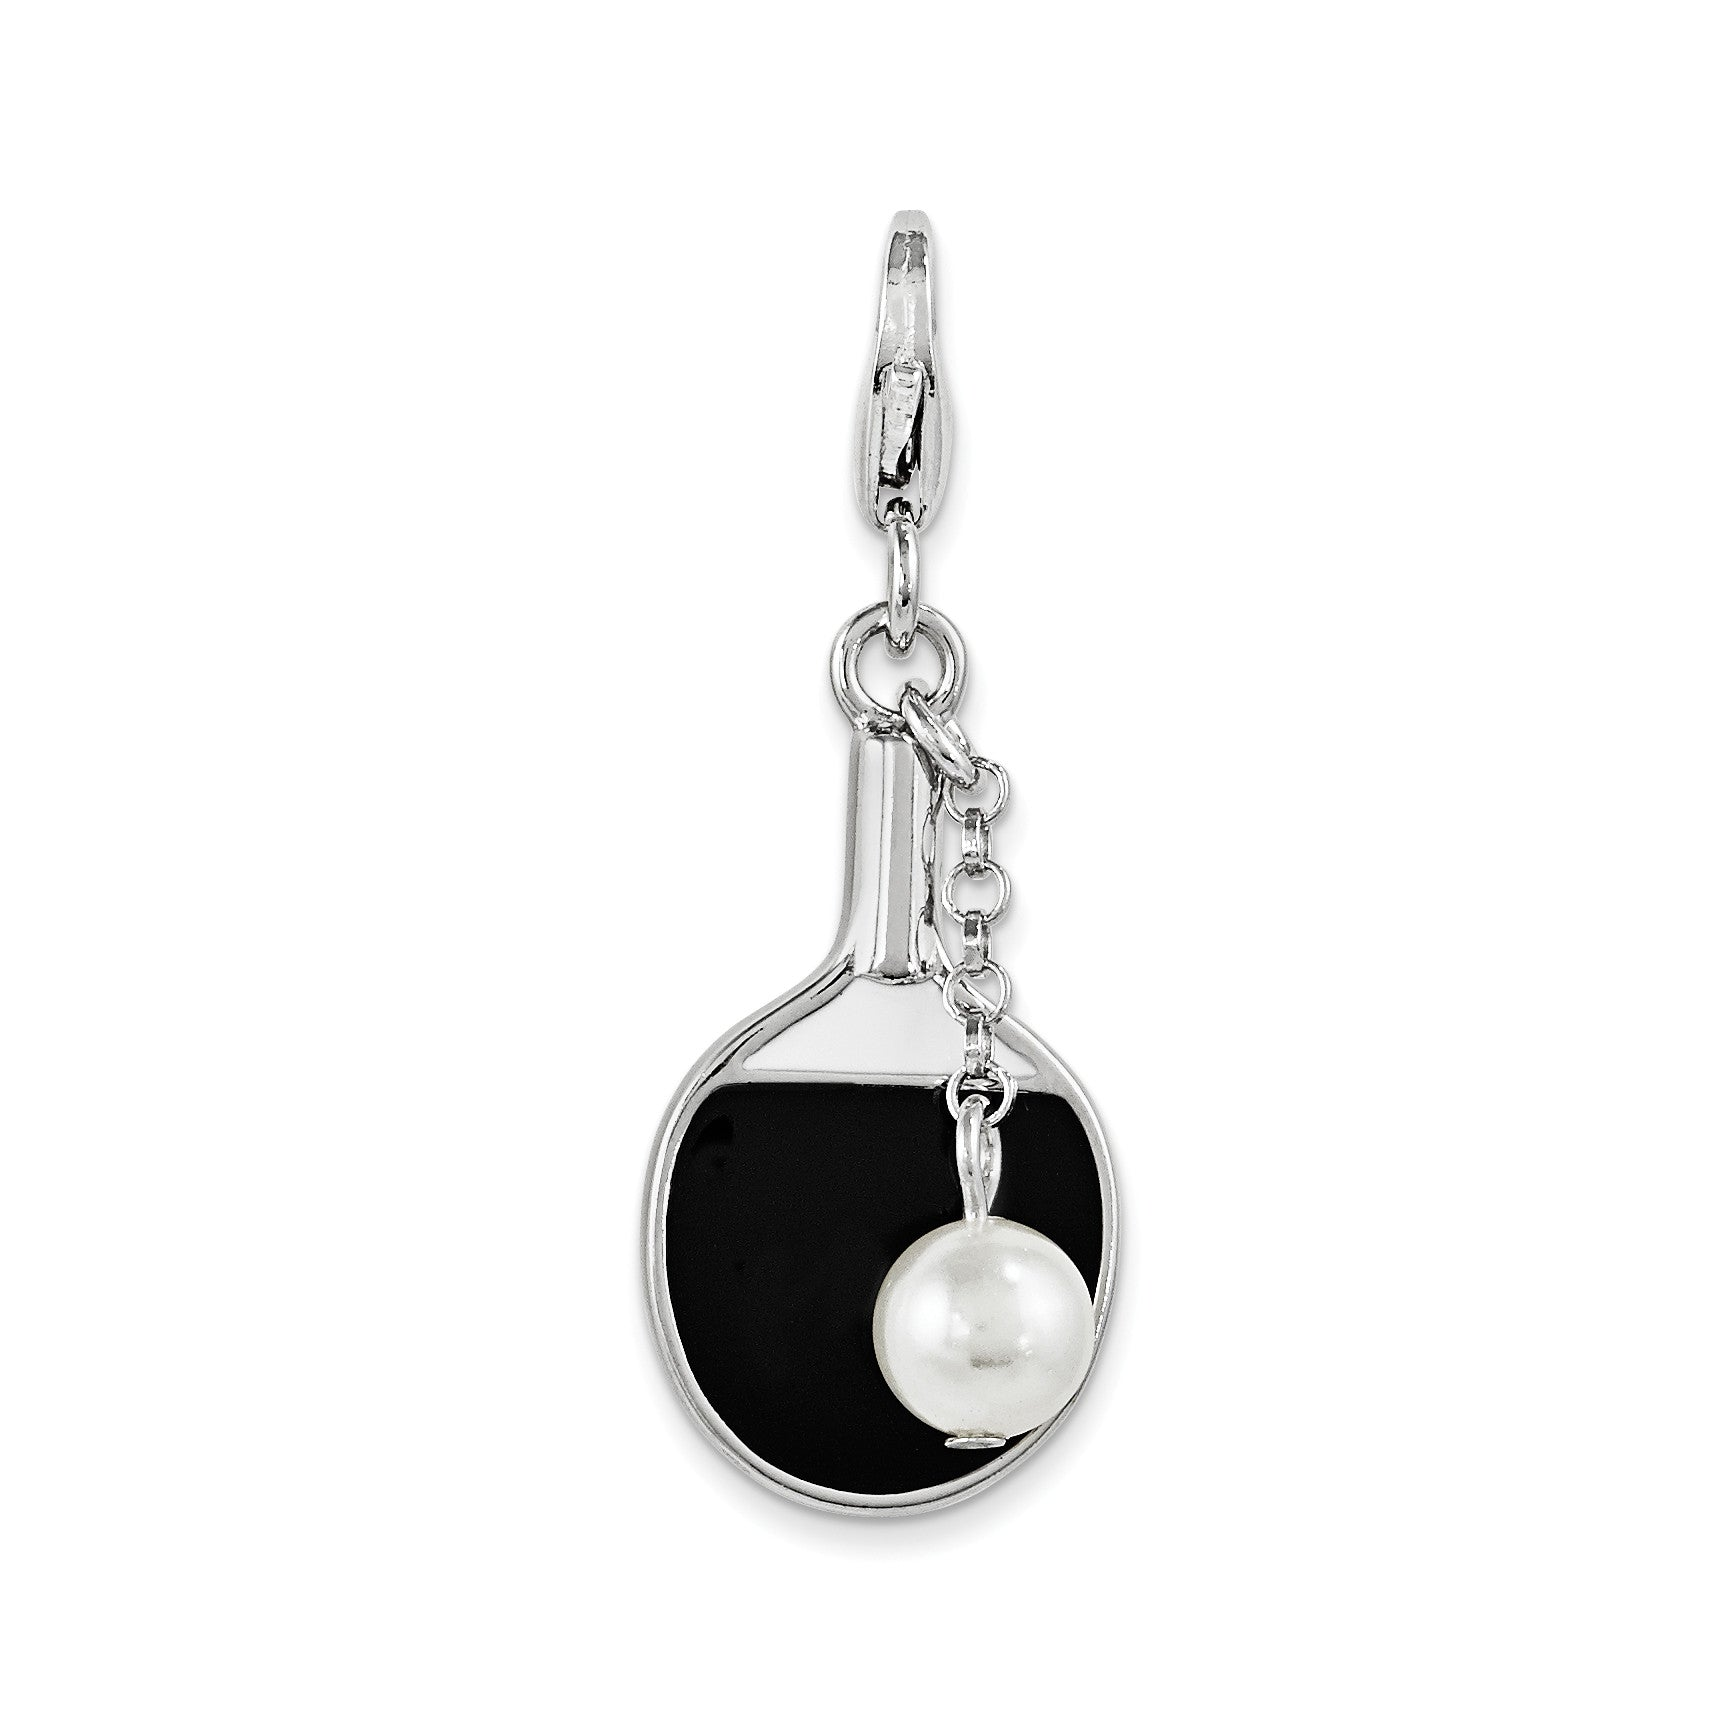 SterlingSilver Enamel Simulated Pearl Paddle w/Lobster Clasp Charm QCC1011 - shirin-diamonds